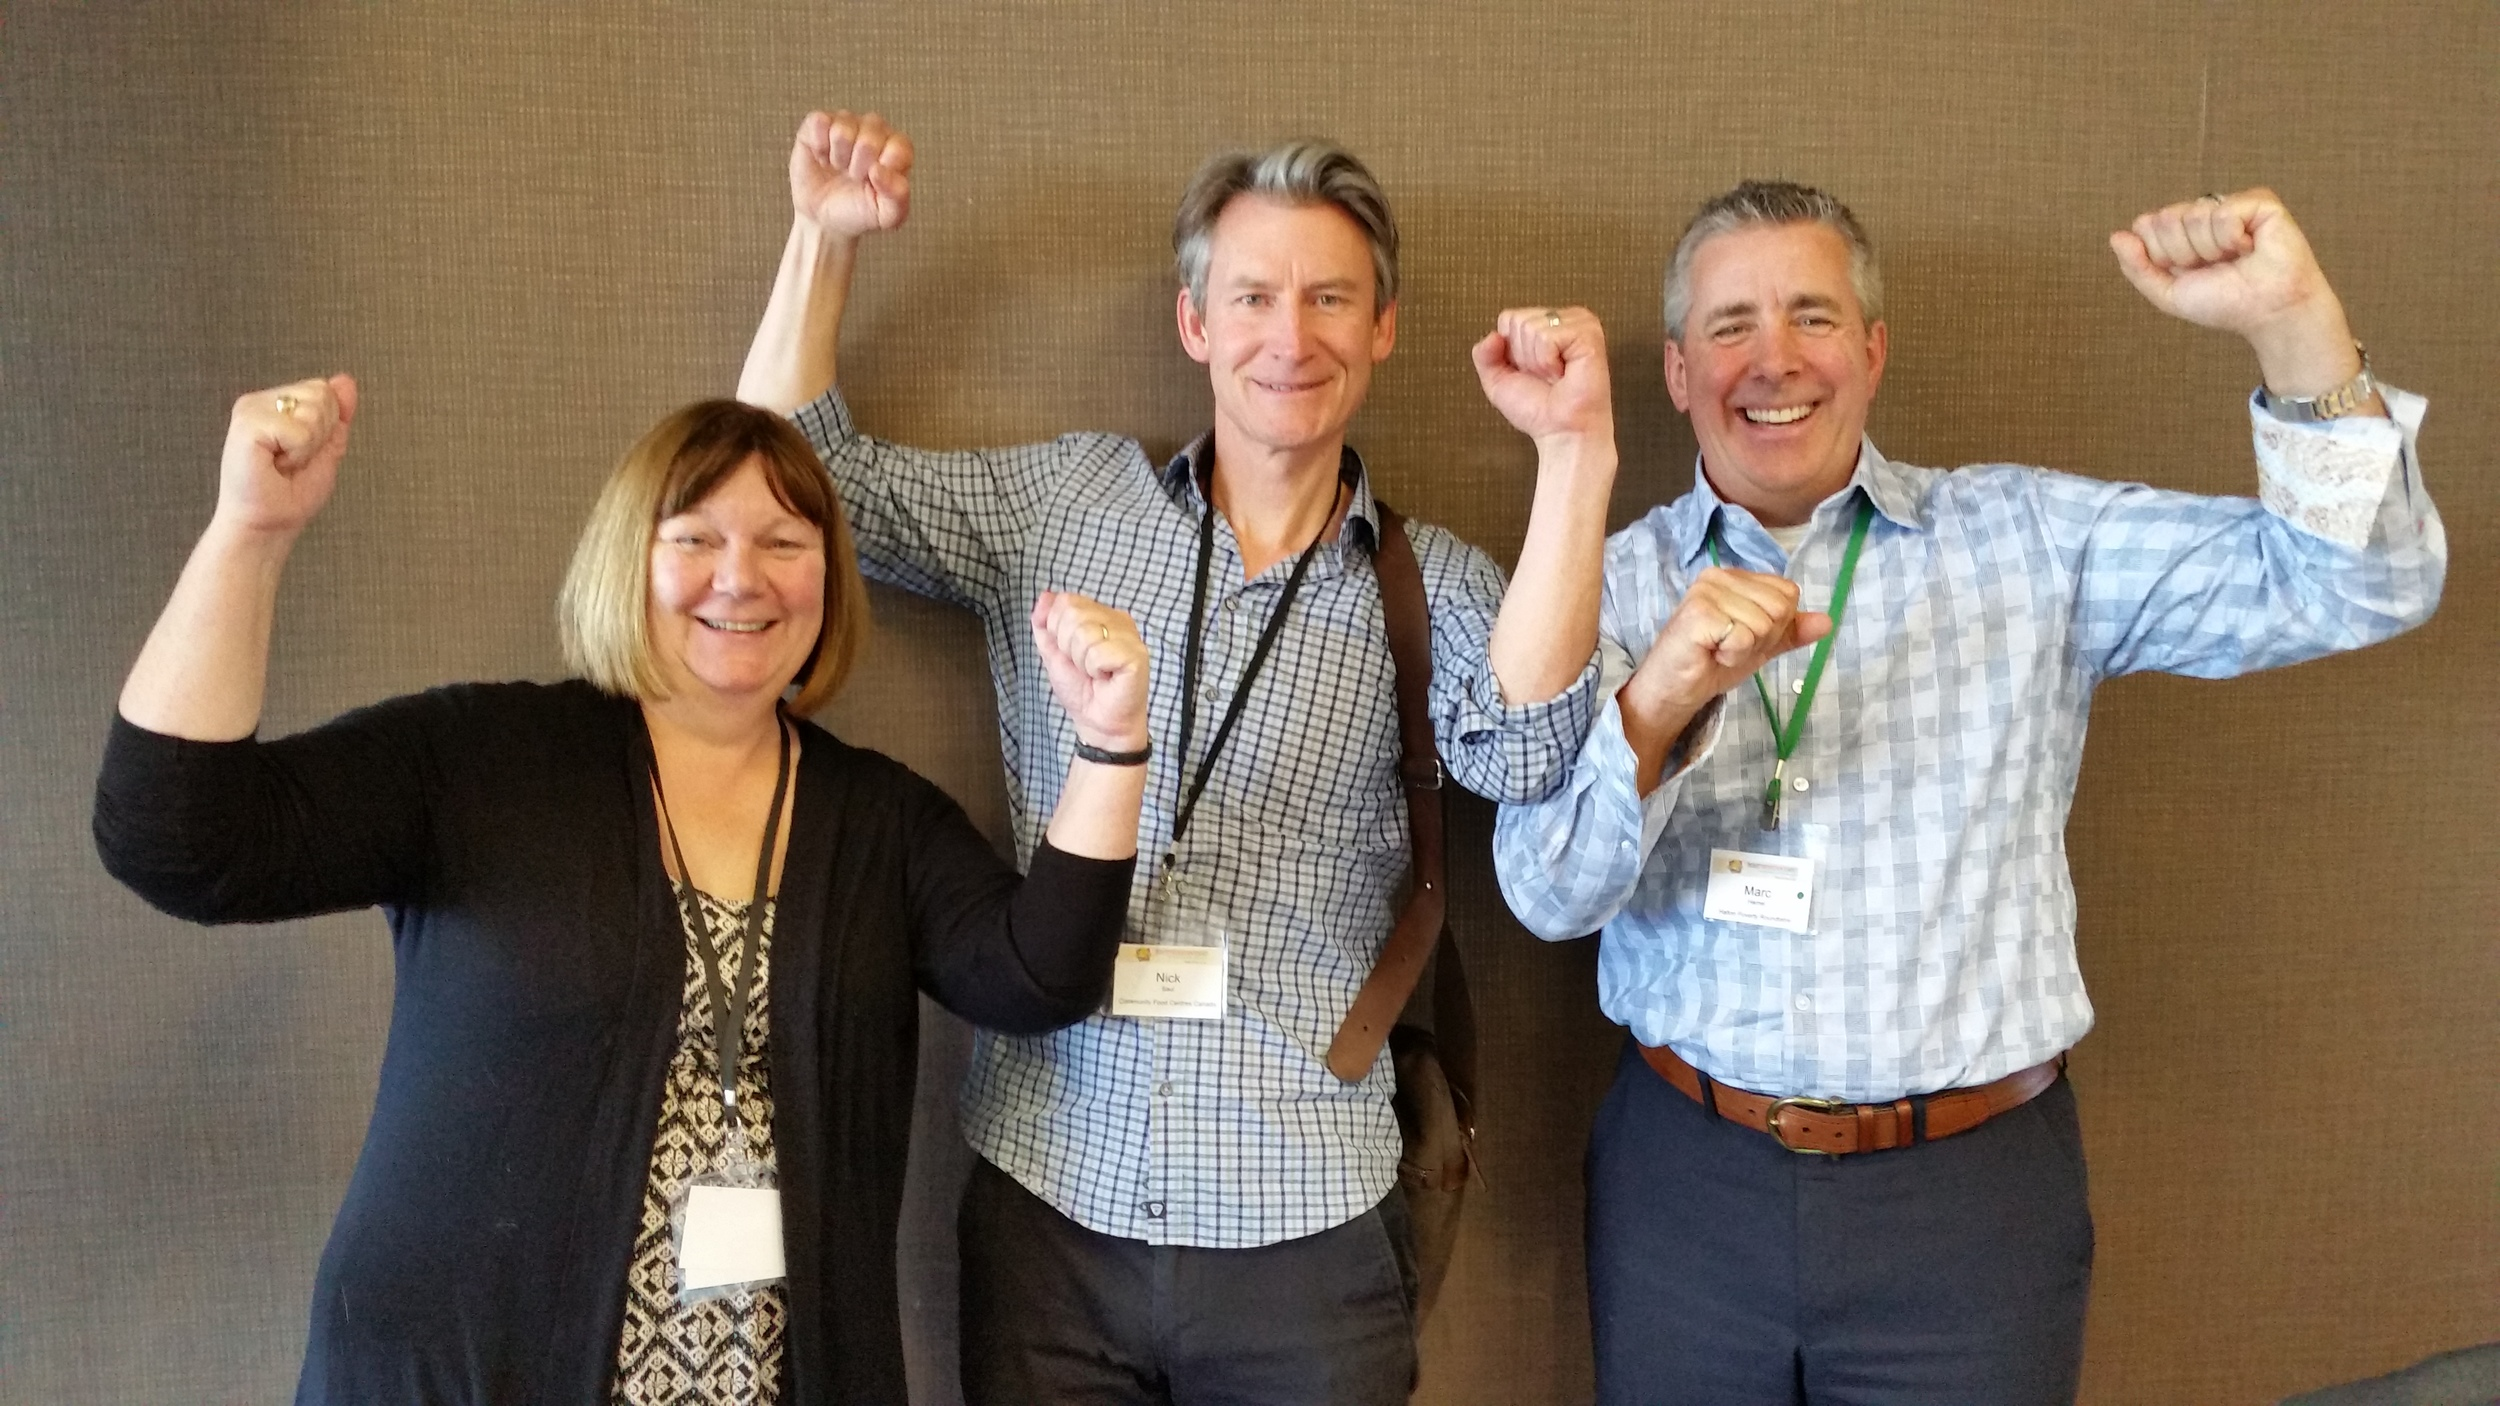 Jane Alexander, panelist at the National Forum on Poverty in Ottawa, May 2015. The topic: building and nurturing champions to end poverty. Pictured here with Nick Saul, CEO Community Food Centres Canada, and Marc Hamel, Business Co-Chair of the Halton Poverty Round Table.